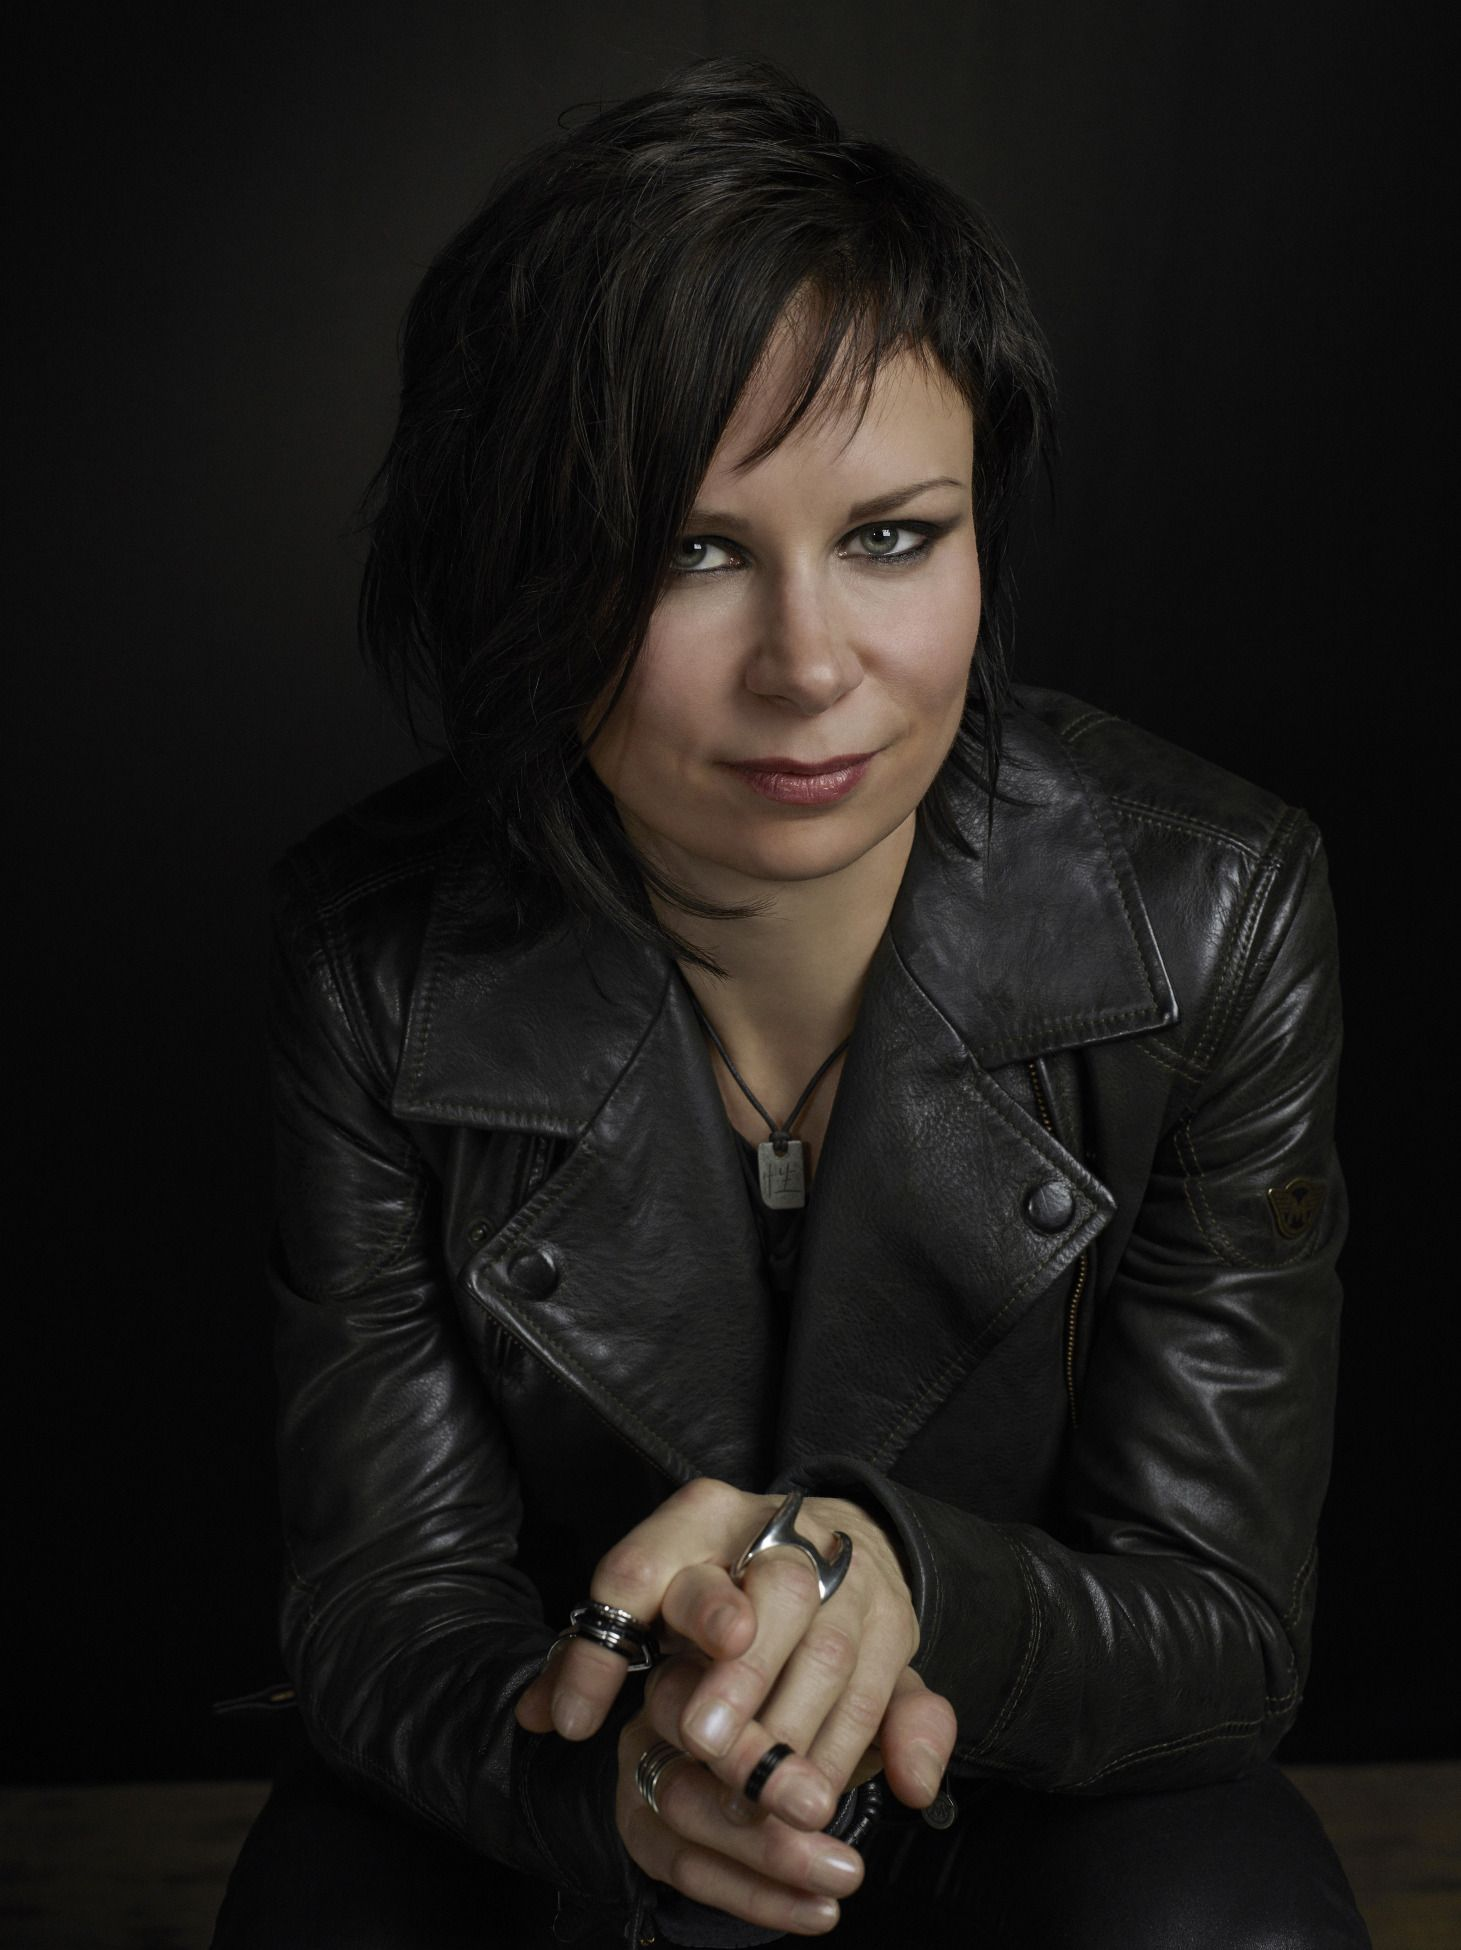 Mary Lynn Rajskub, star of 24 – Live Another Day wore the Matchless Soho Blouson in the season premiere